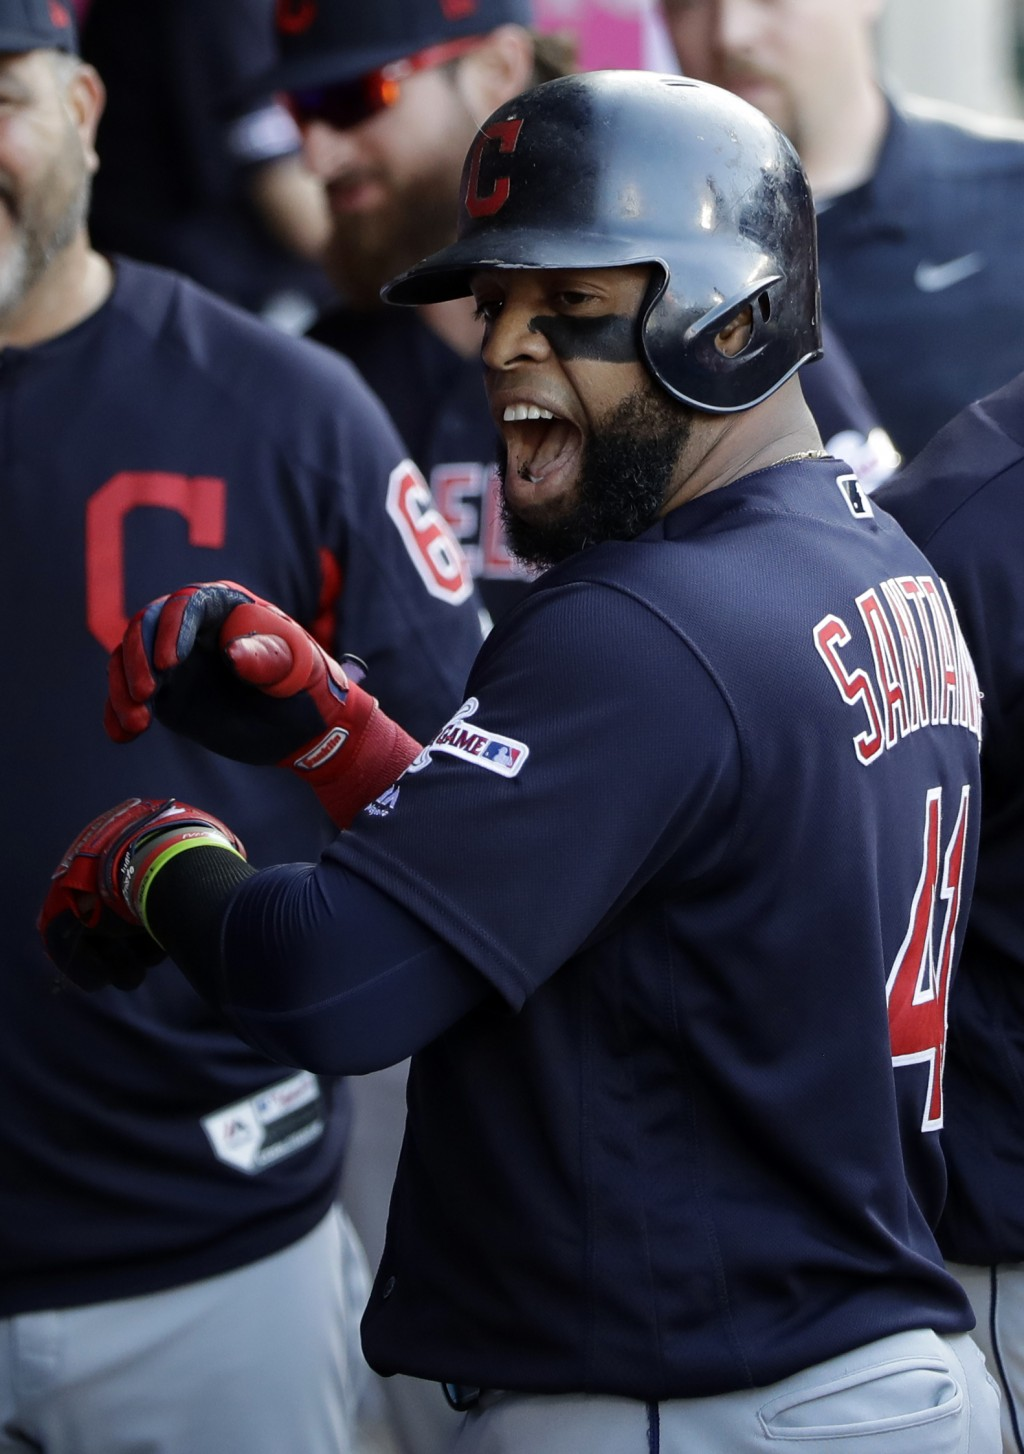 Cleveland Indians' Carlos Santana celebrates in the dugout after his solo home run against the Los Angeles Angels during the first inning of a basebal...